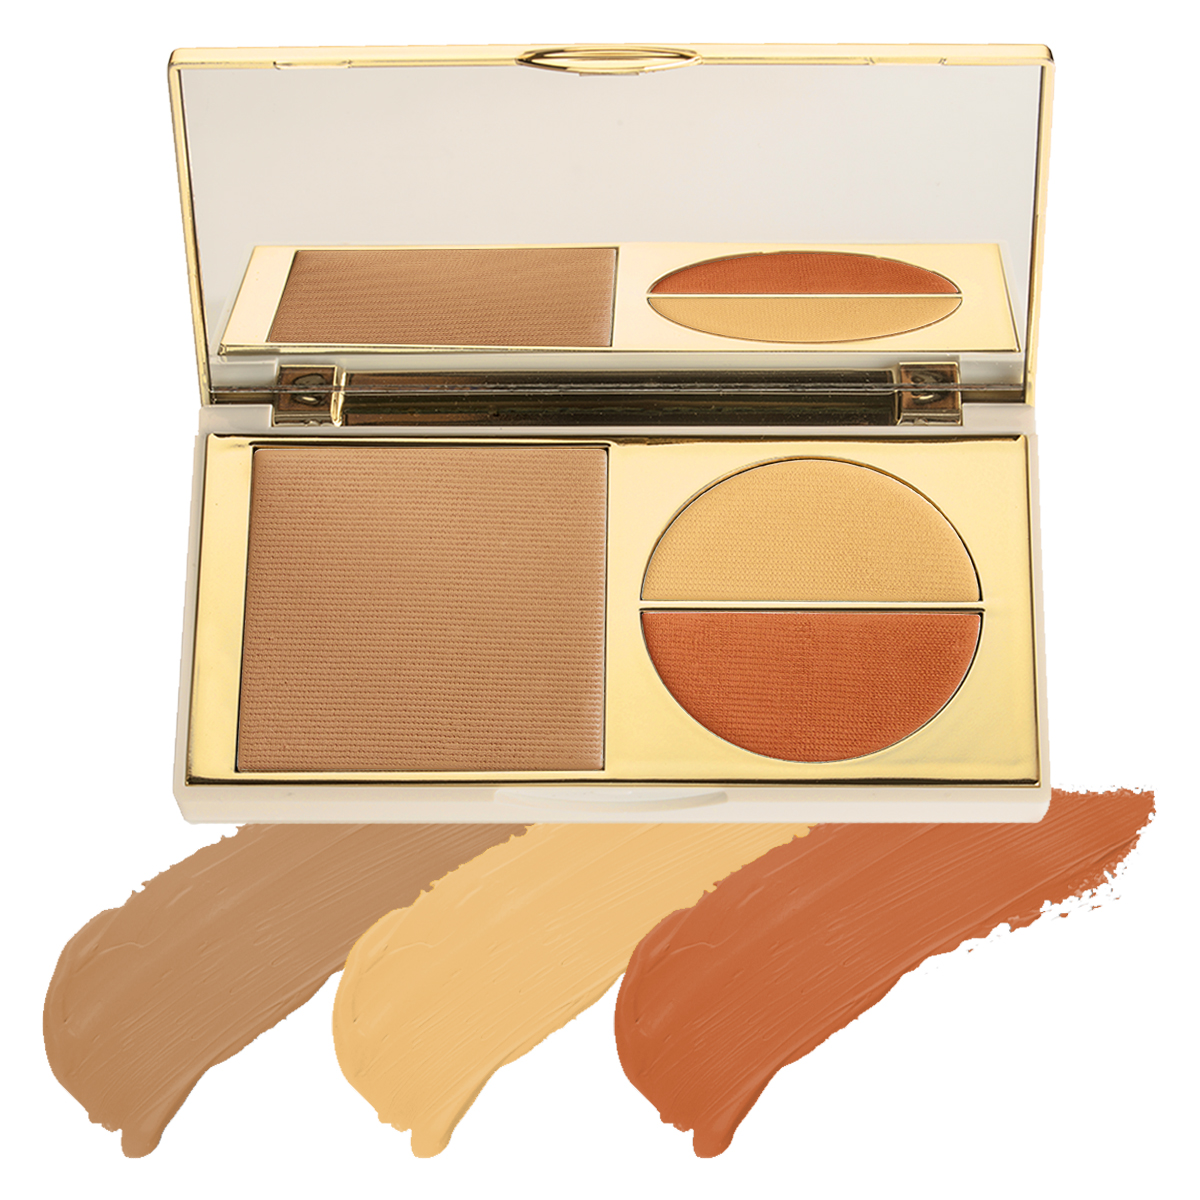 Buy Internation Makeup Kits Cosmetic Products Online In India Myglamm Frnd Cosmetics Lip Cream Dusk Till Dawn Total Makeover 5 1 Finished Face Medium Skin Tone